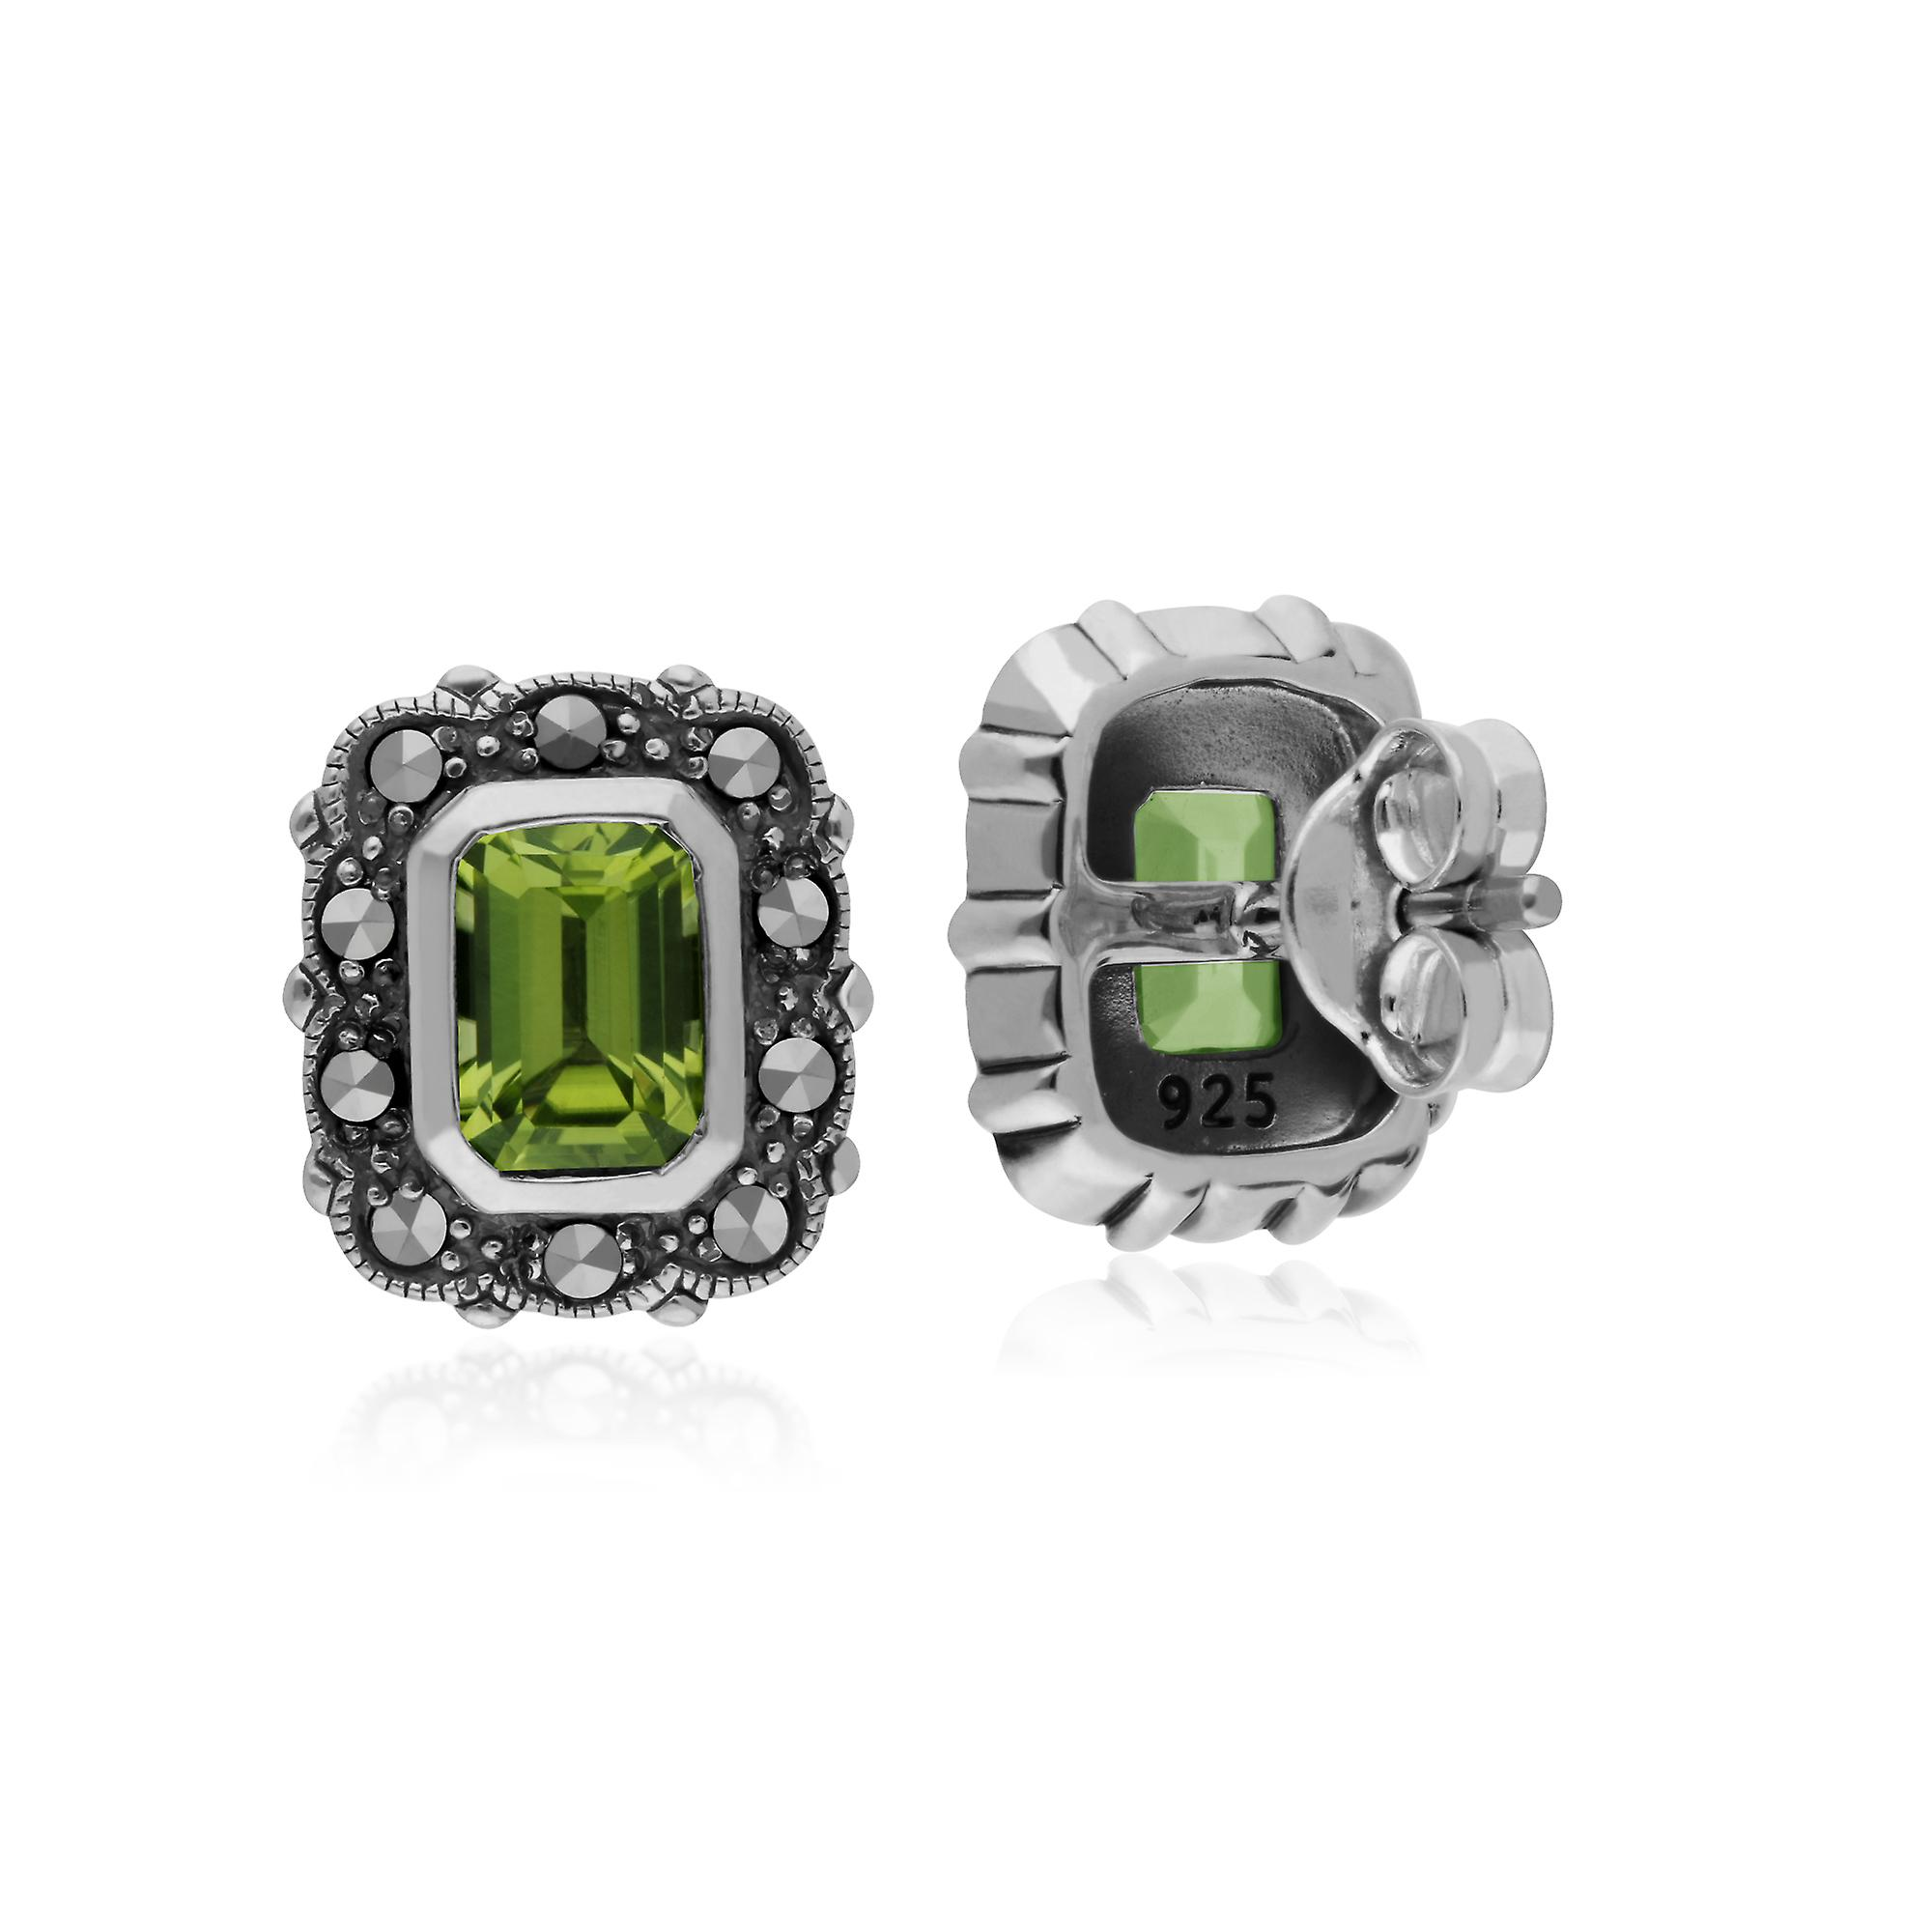 Gemondo Sterling Silver Peridot & Marcasite Octagon Art Nouveau Stud Earrings